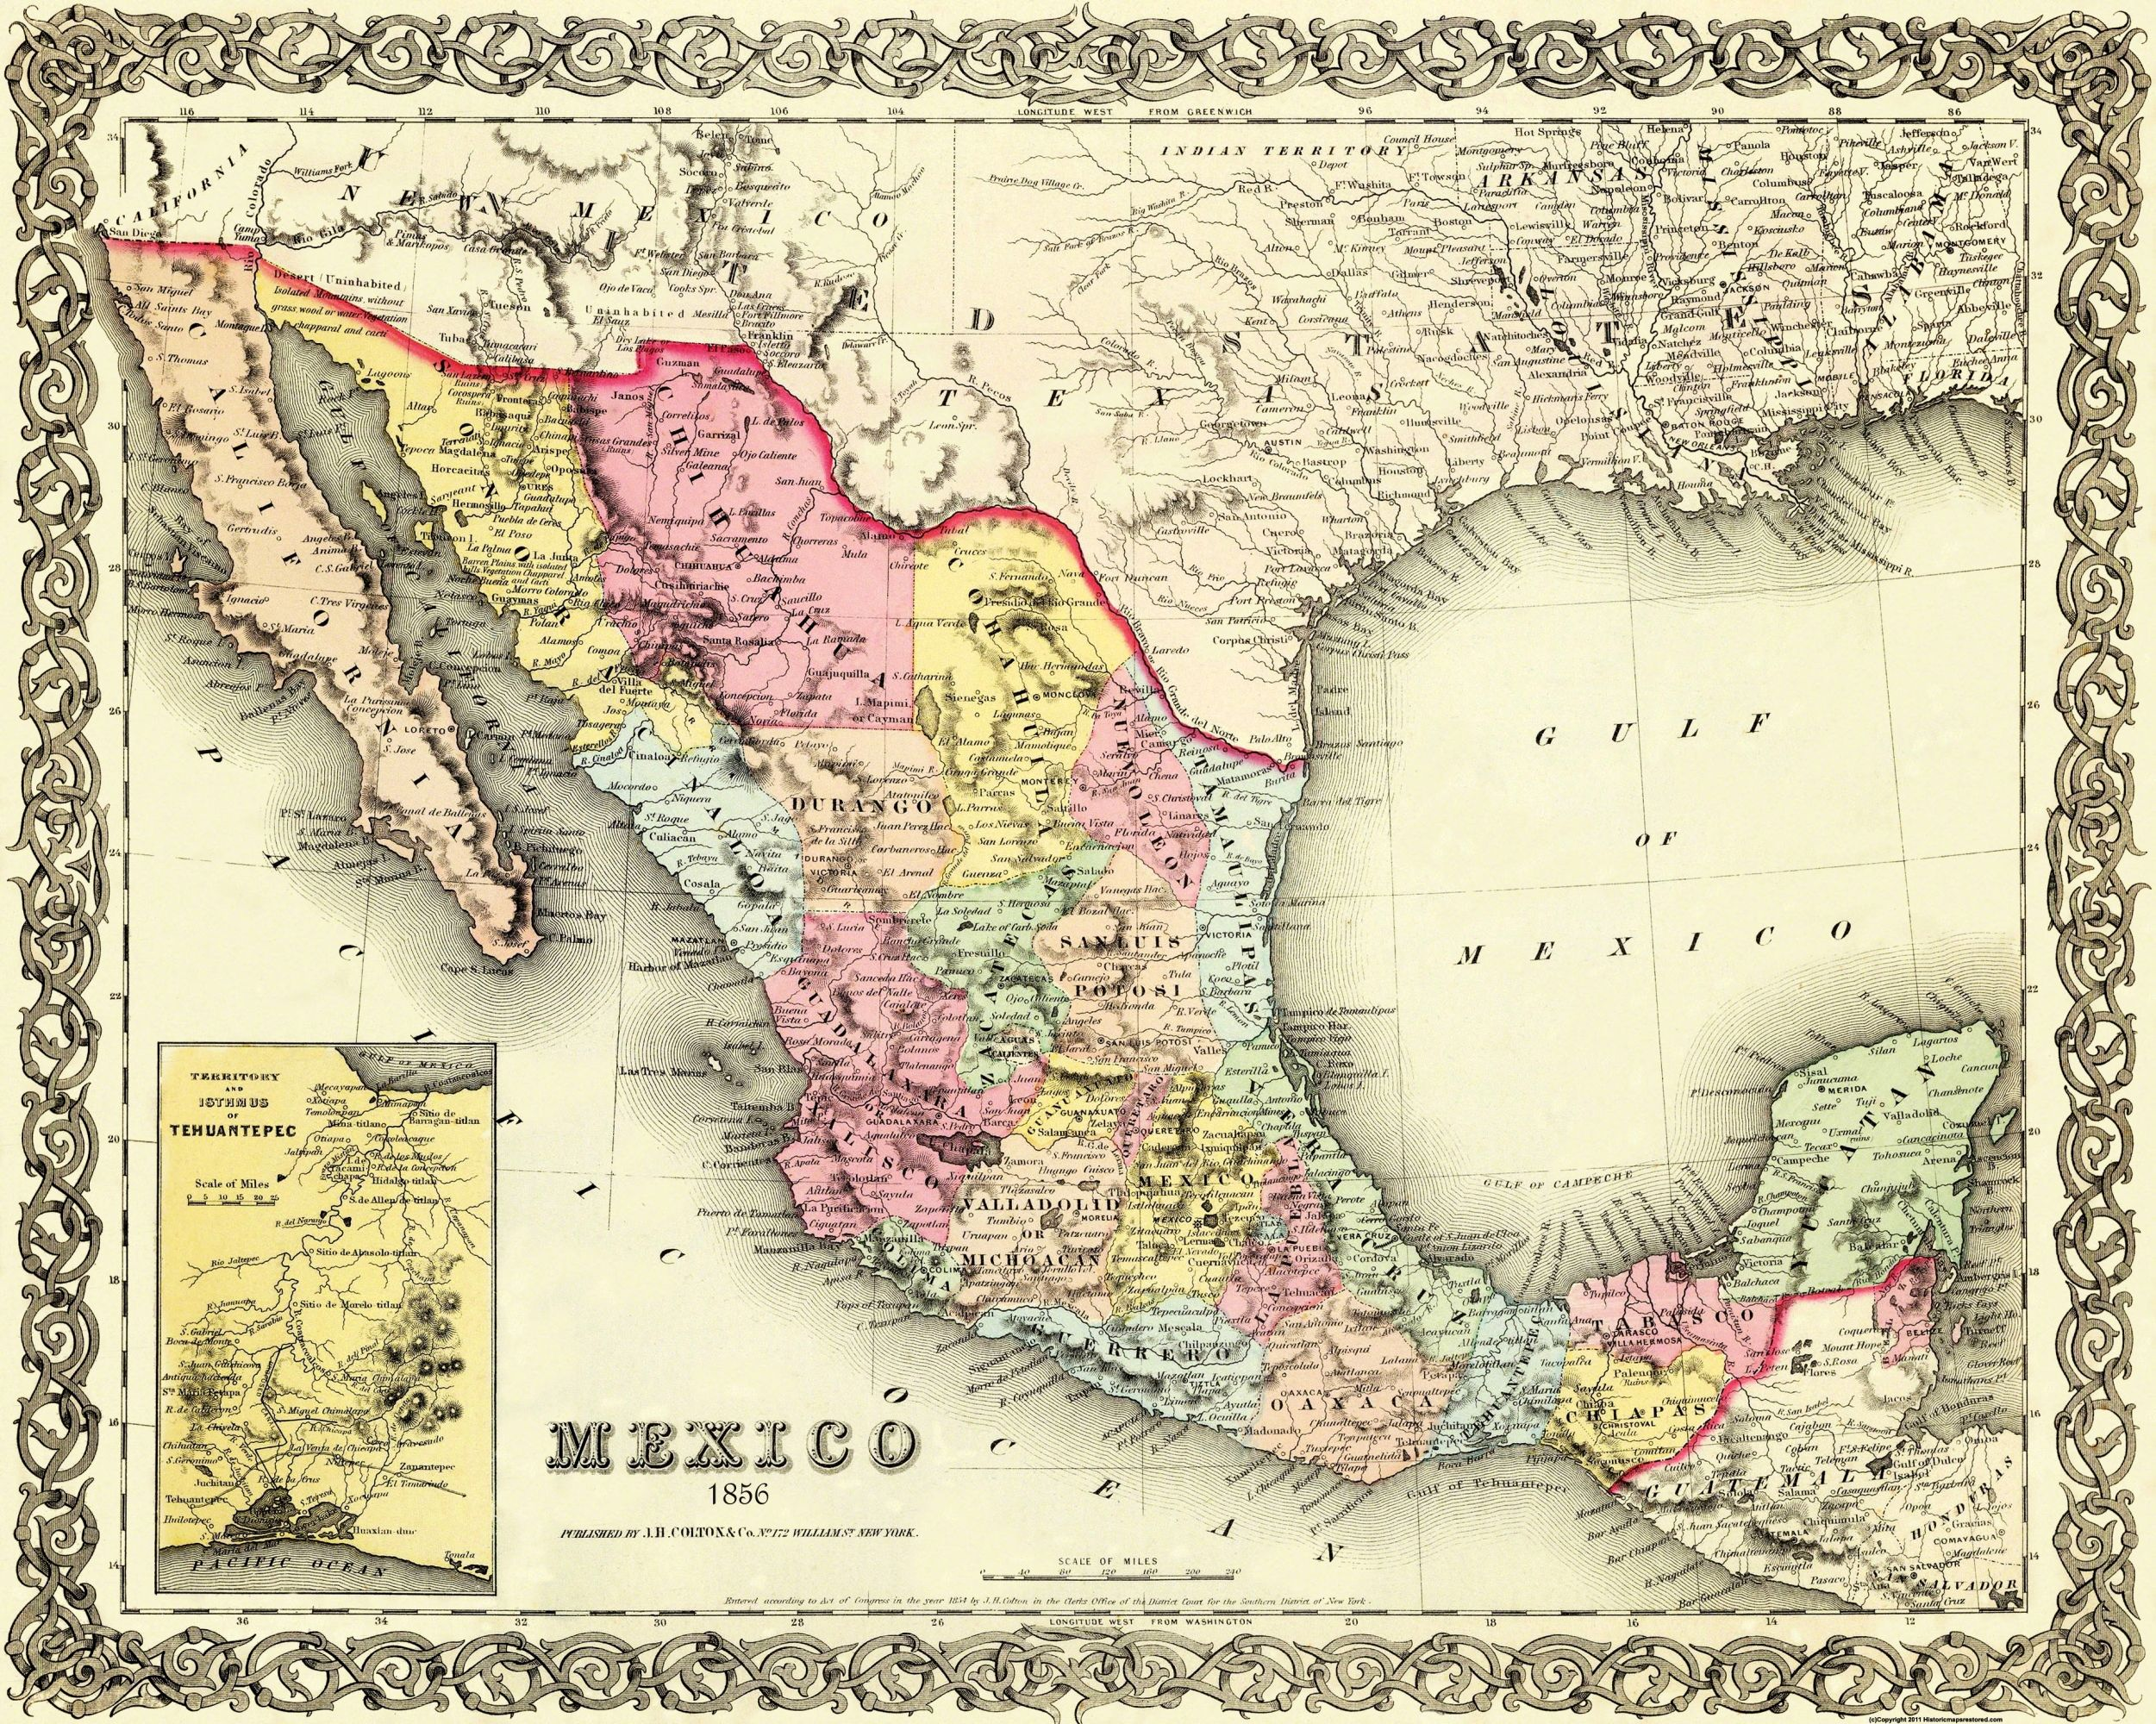 Old Mexico Map   Colton 1856   28.75 x 23   Walmart.com